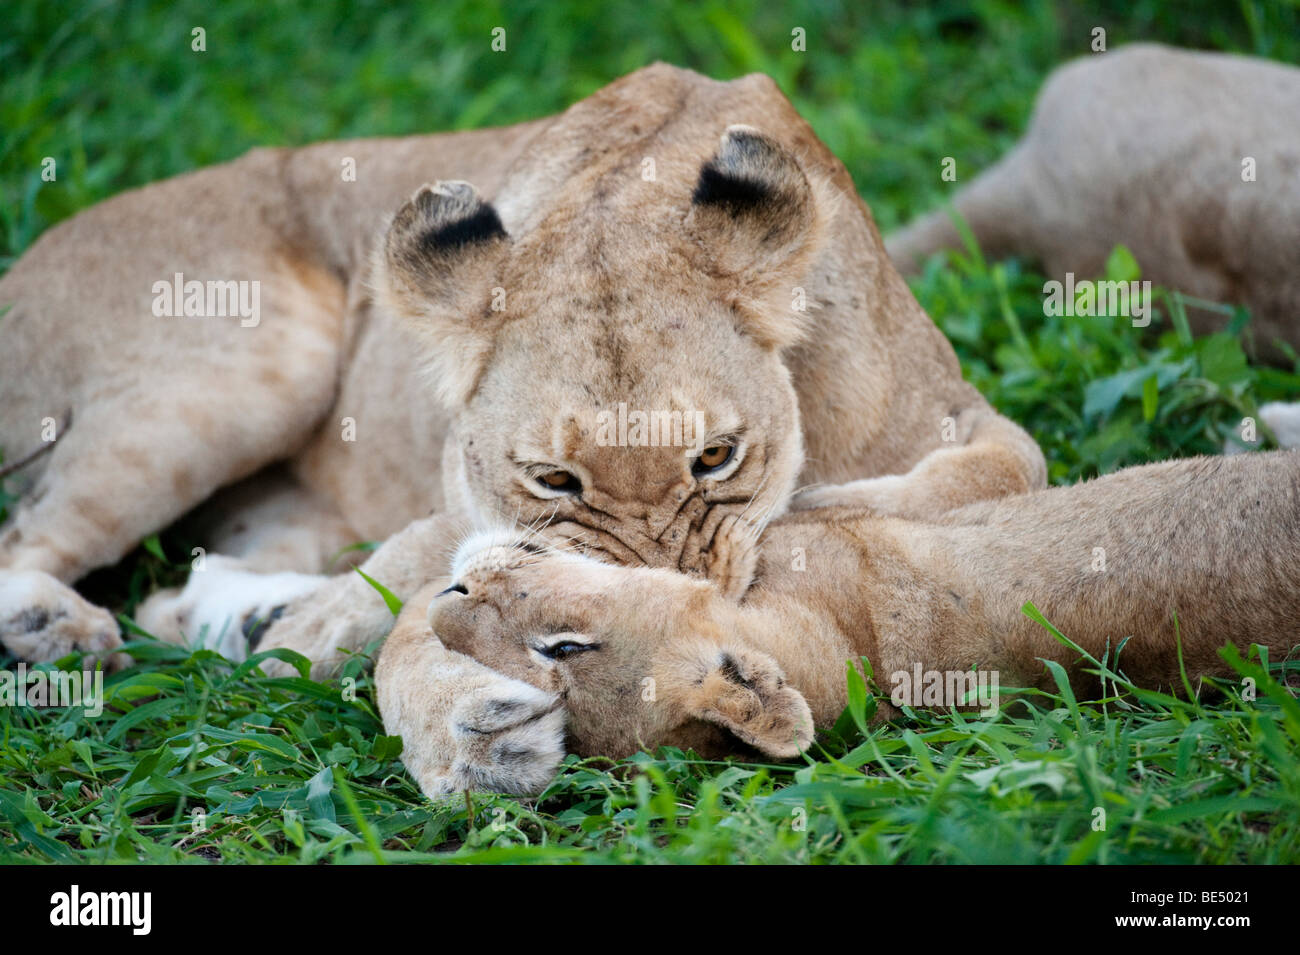 Lion playing with cub (Panthero leo), Kruger National Park, South Africa Stock Photo